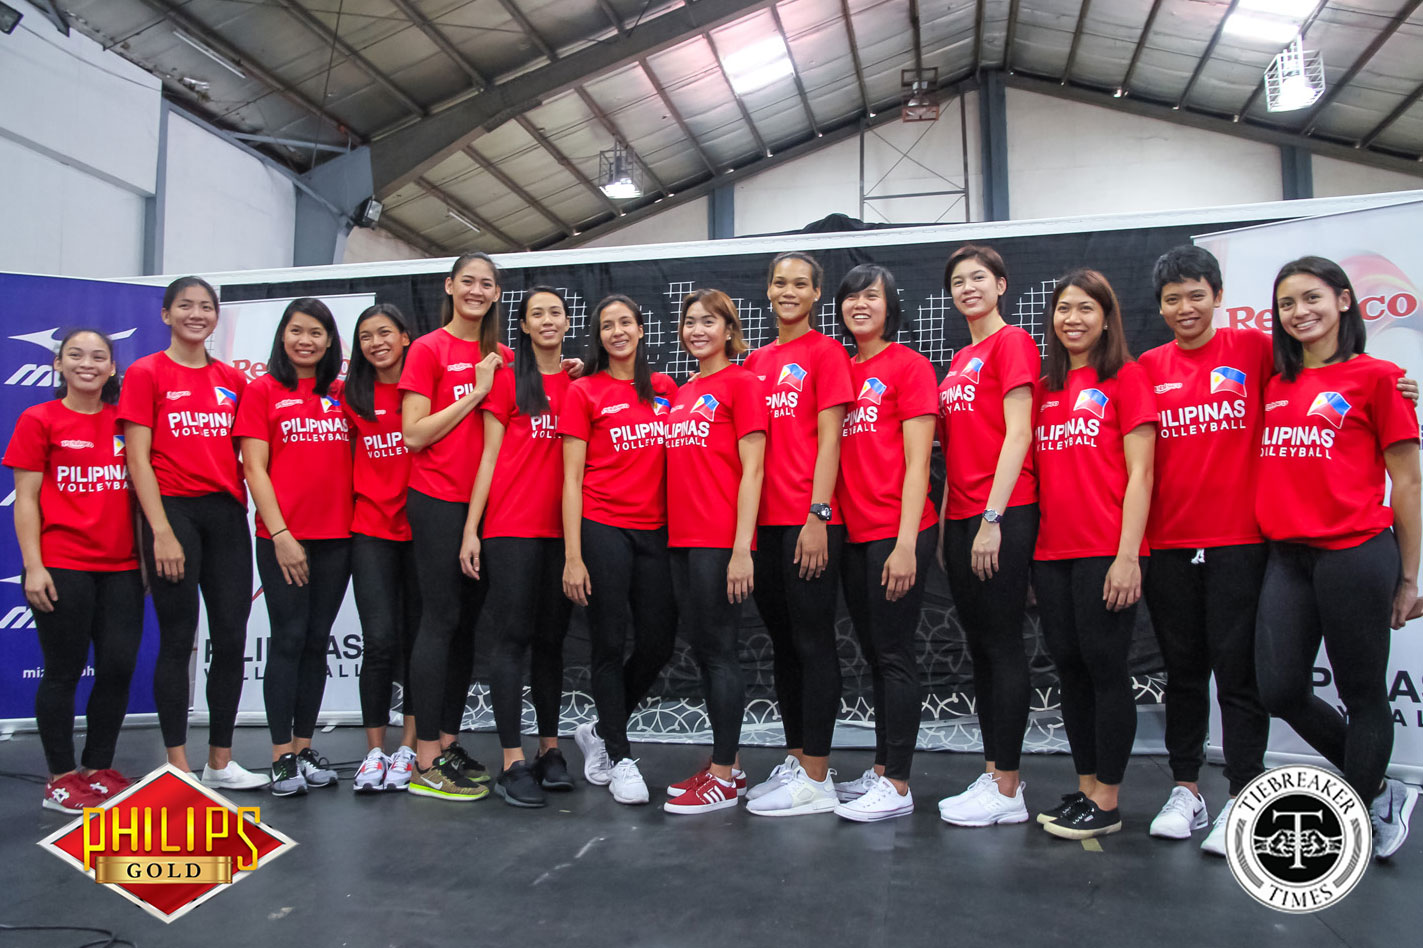 Philippine Sports News - Tiebreaker Times Women's Volleyball Team banking on Japan trip to improve chemistry 2017 Asian Women's News PSL PVL Volleyball  Tats Suzara Rhea Dimaculangan Mika Reyes Maica Ortiz Kim Dy Jovelyn Gonzaga Jaja Santiago Gen Casugod Francis Vicente Denden Lazaro Dawn Macandili Alyssa Valdez Aiza Maizo-Pontillas Abigail Marano 2017 SEA Games - Volleyball